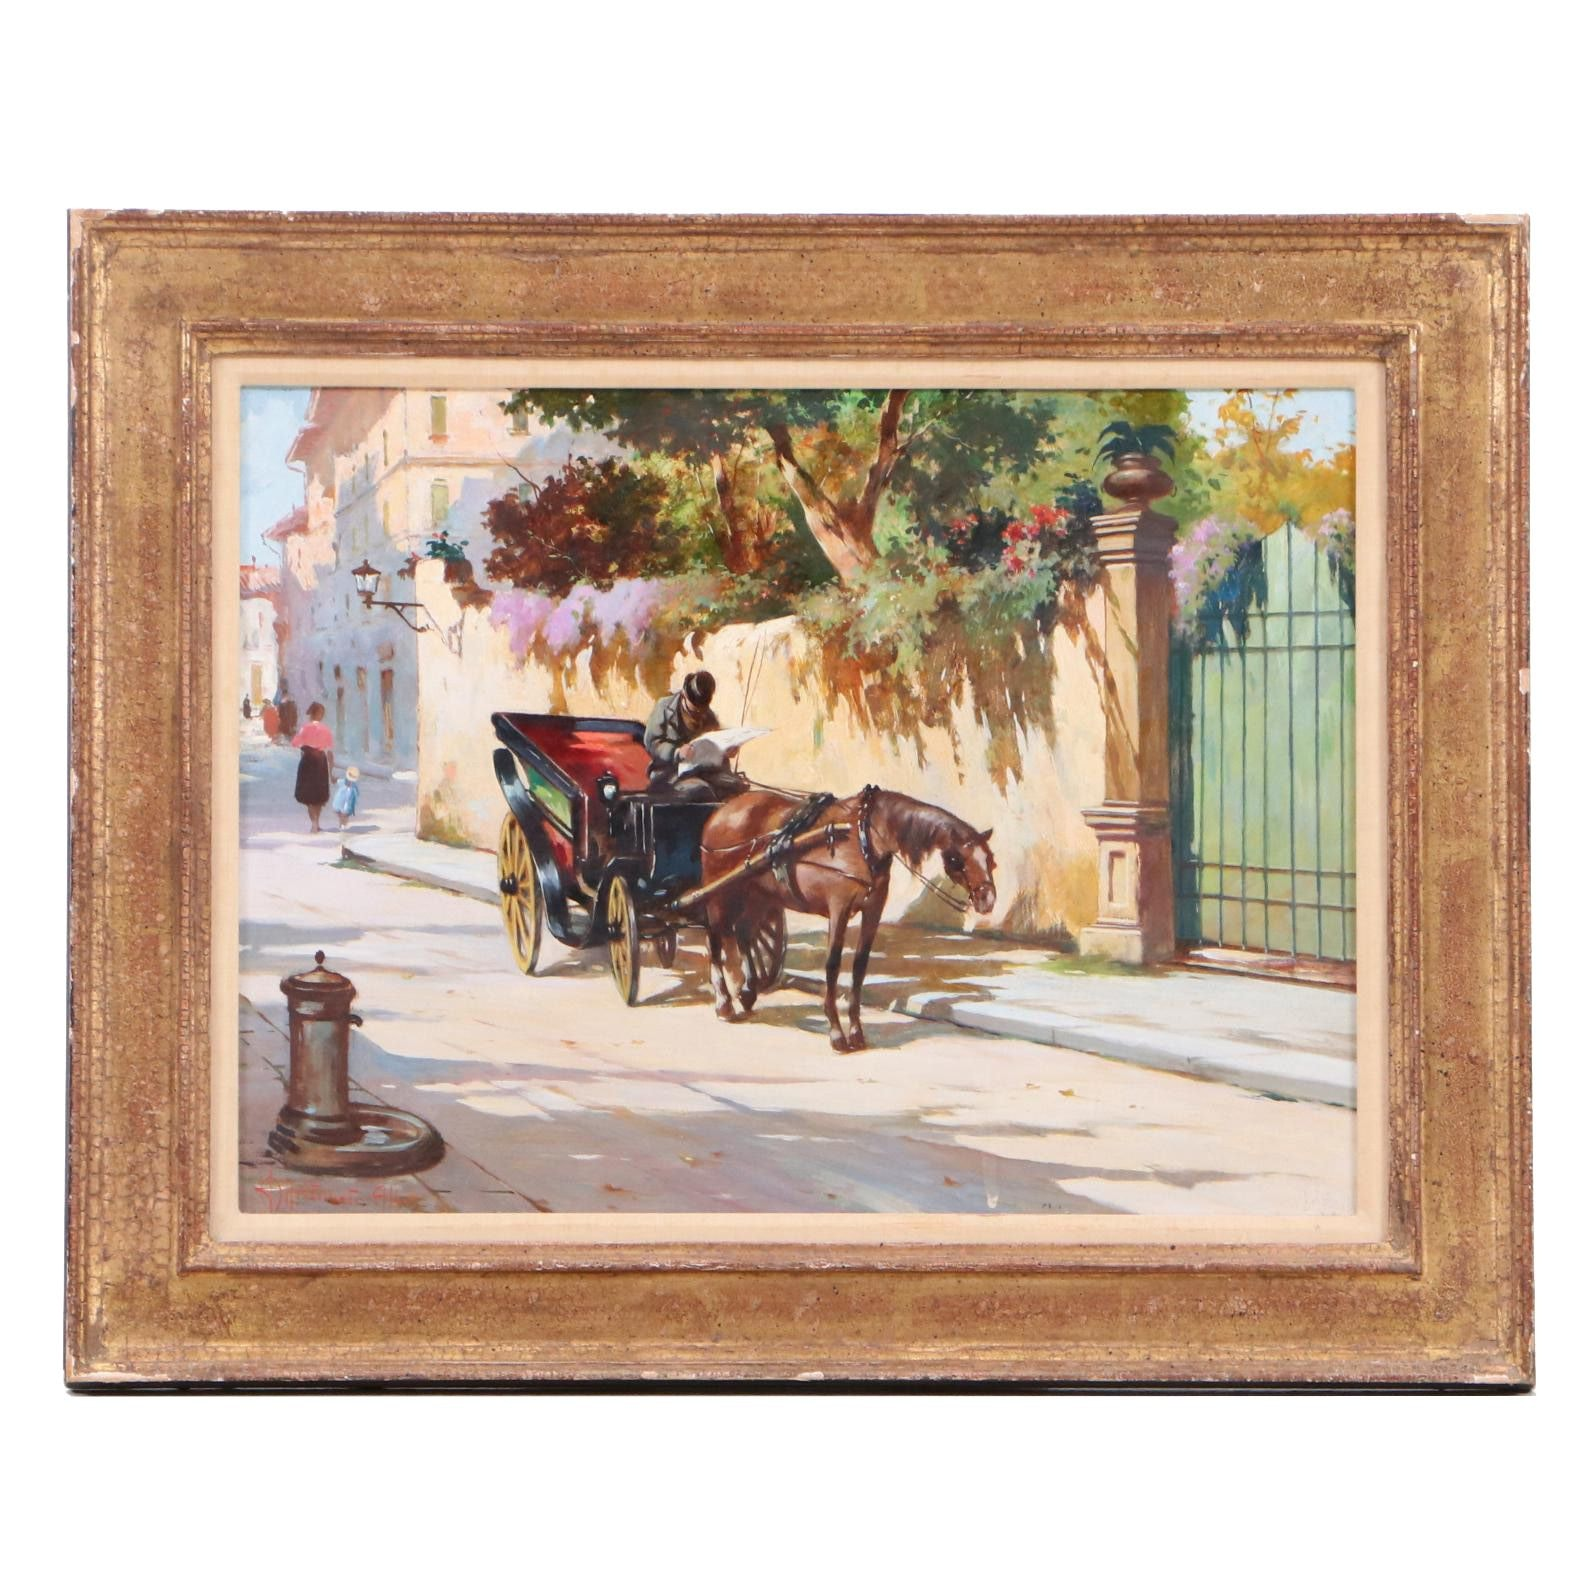 Antique Oil Painting  of a Street Scene